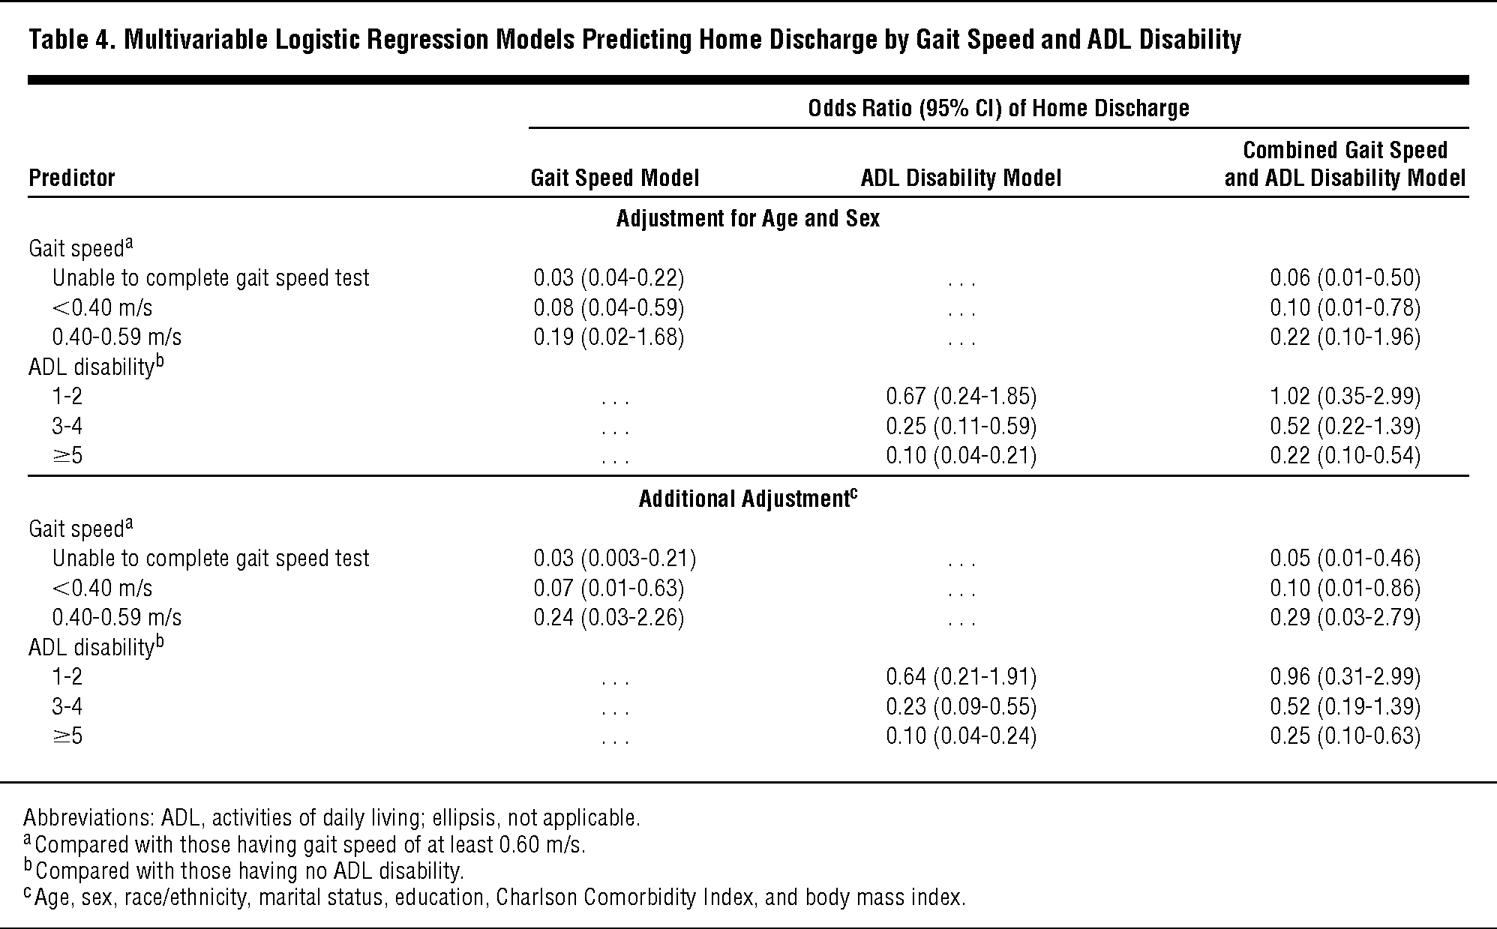 Multivariable Logistic Regression Models Predicting Home Discharge By Gait Sd And Adl Disability